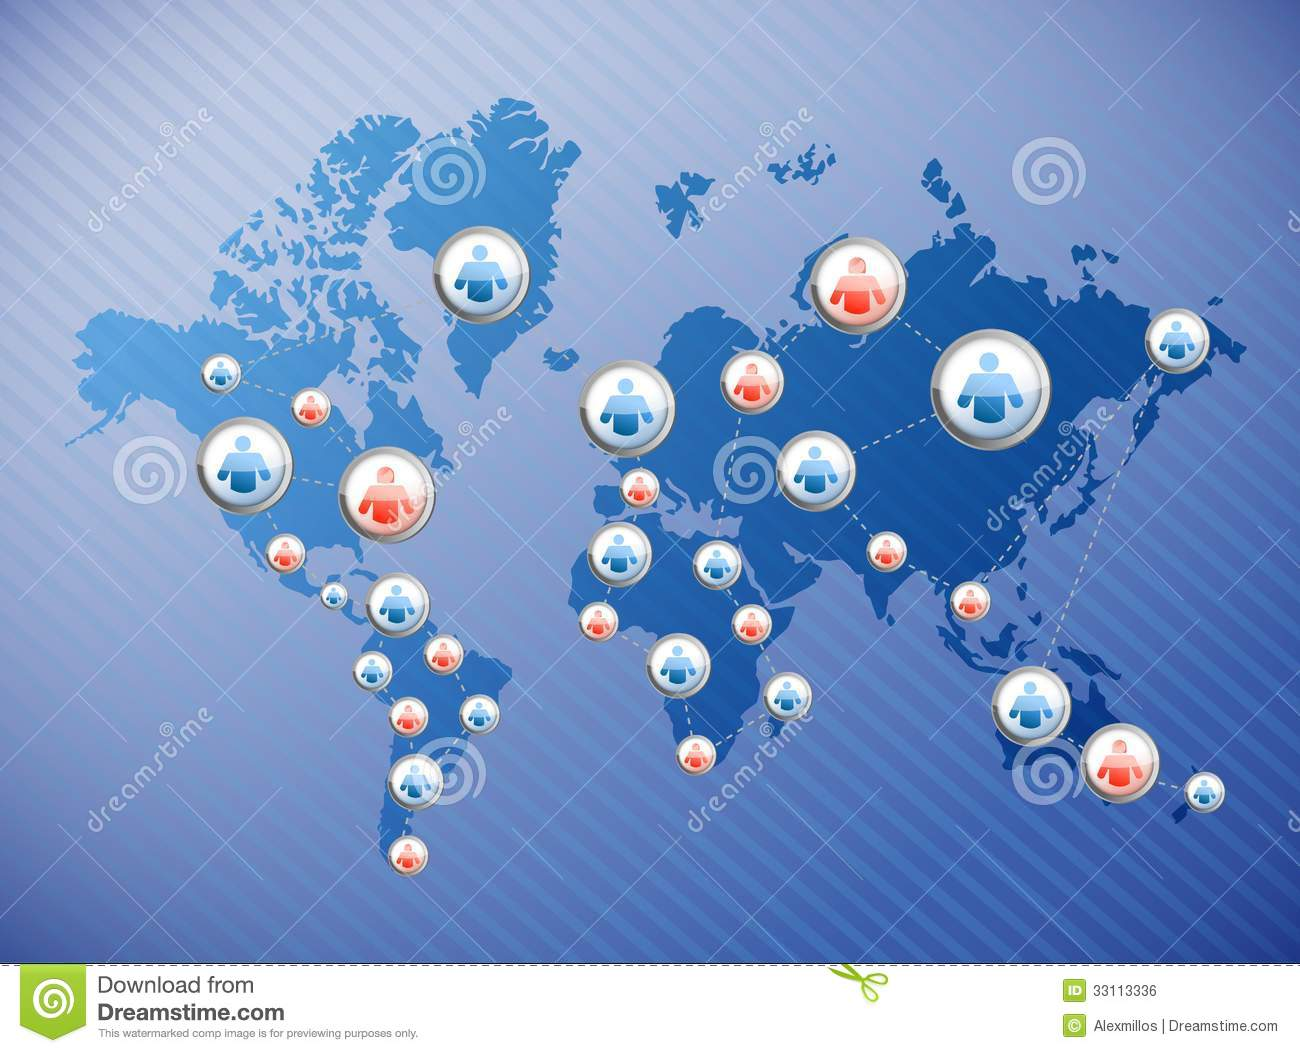 Social Media Connections Illustration Design Over World Map on risk management concept map